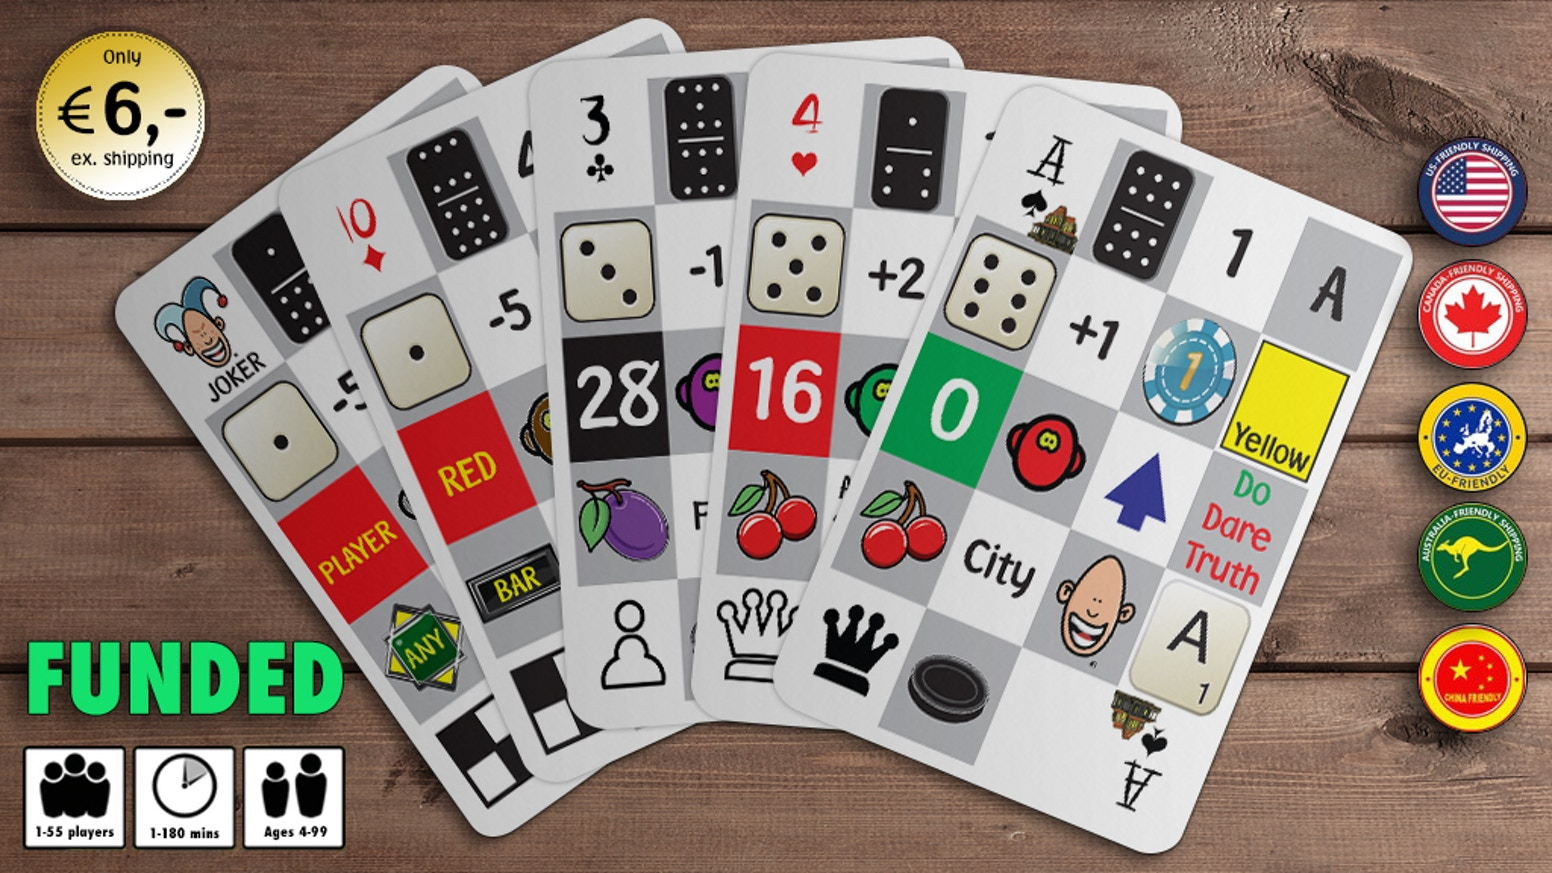 Playing Cards with extra games and extra functionality. Domino, Chess, Band It, Roulette, Dice, Play Money, Play Fields and more...